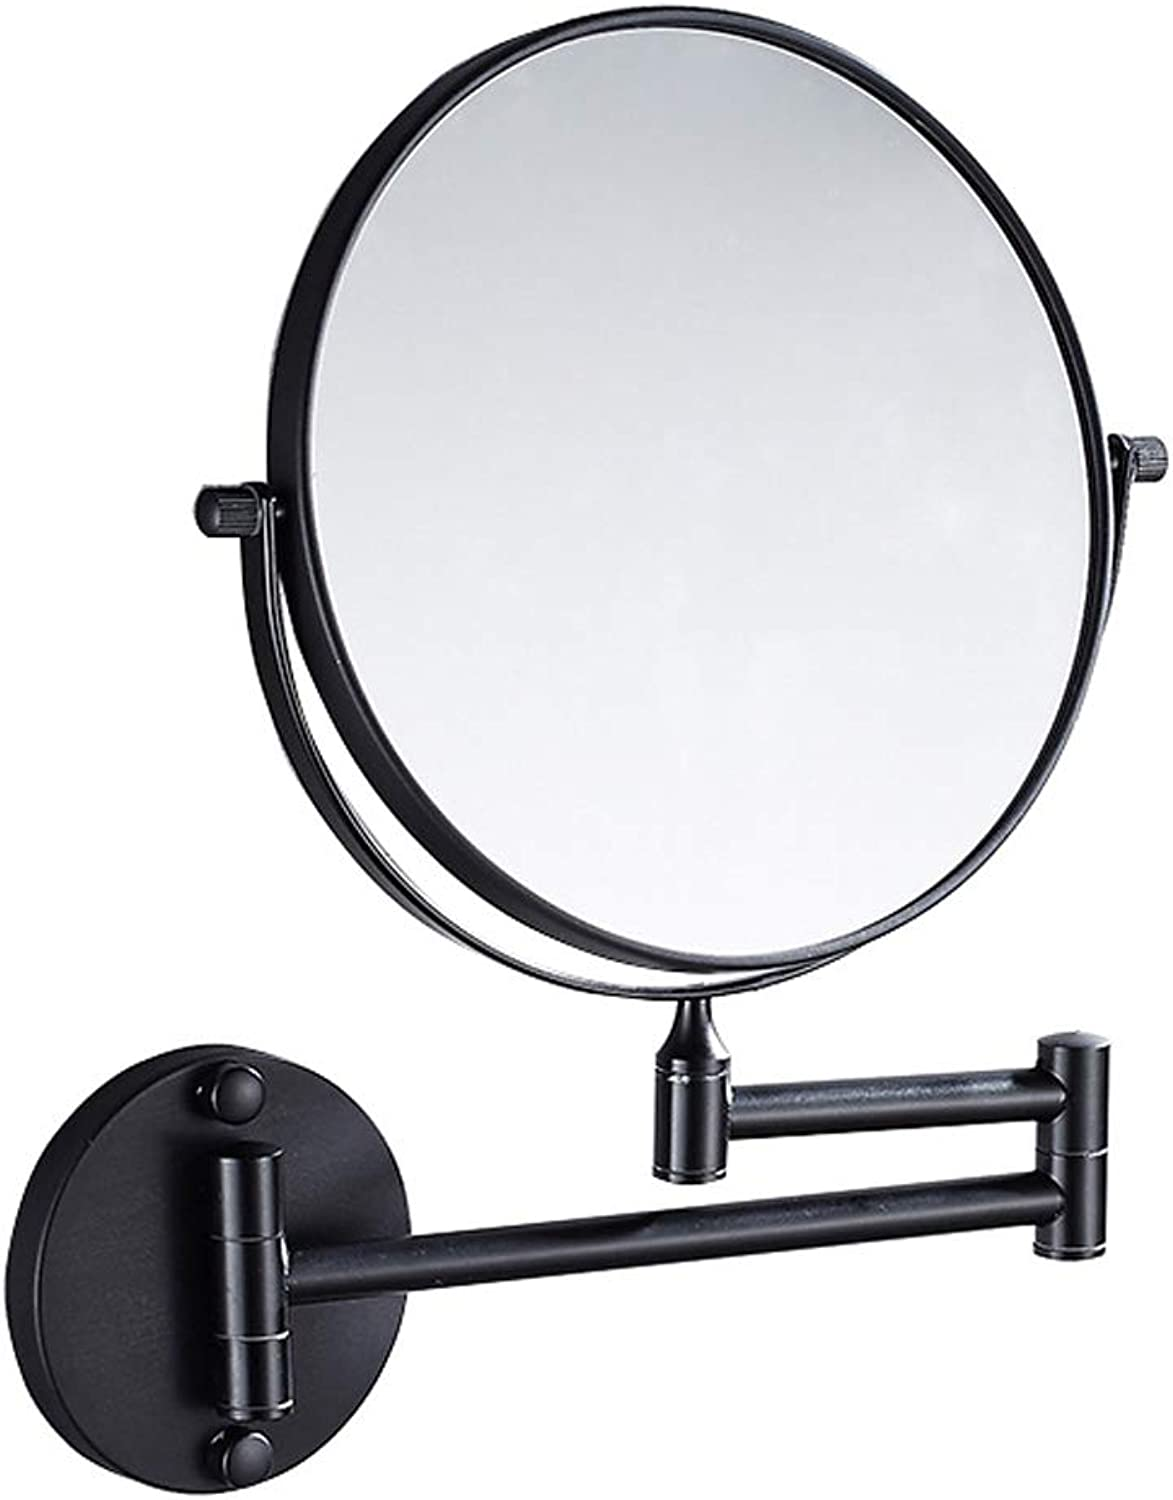 Wall Mounted Makeup Mirror - with 3X Magnification 2-Sided Swivel Shaving Bathroom Makeup Vanity Mirror Silver   8-inch